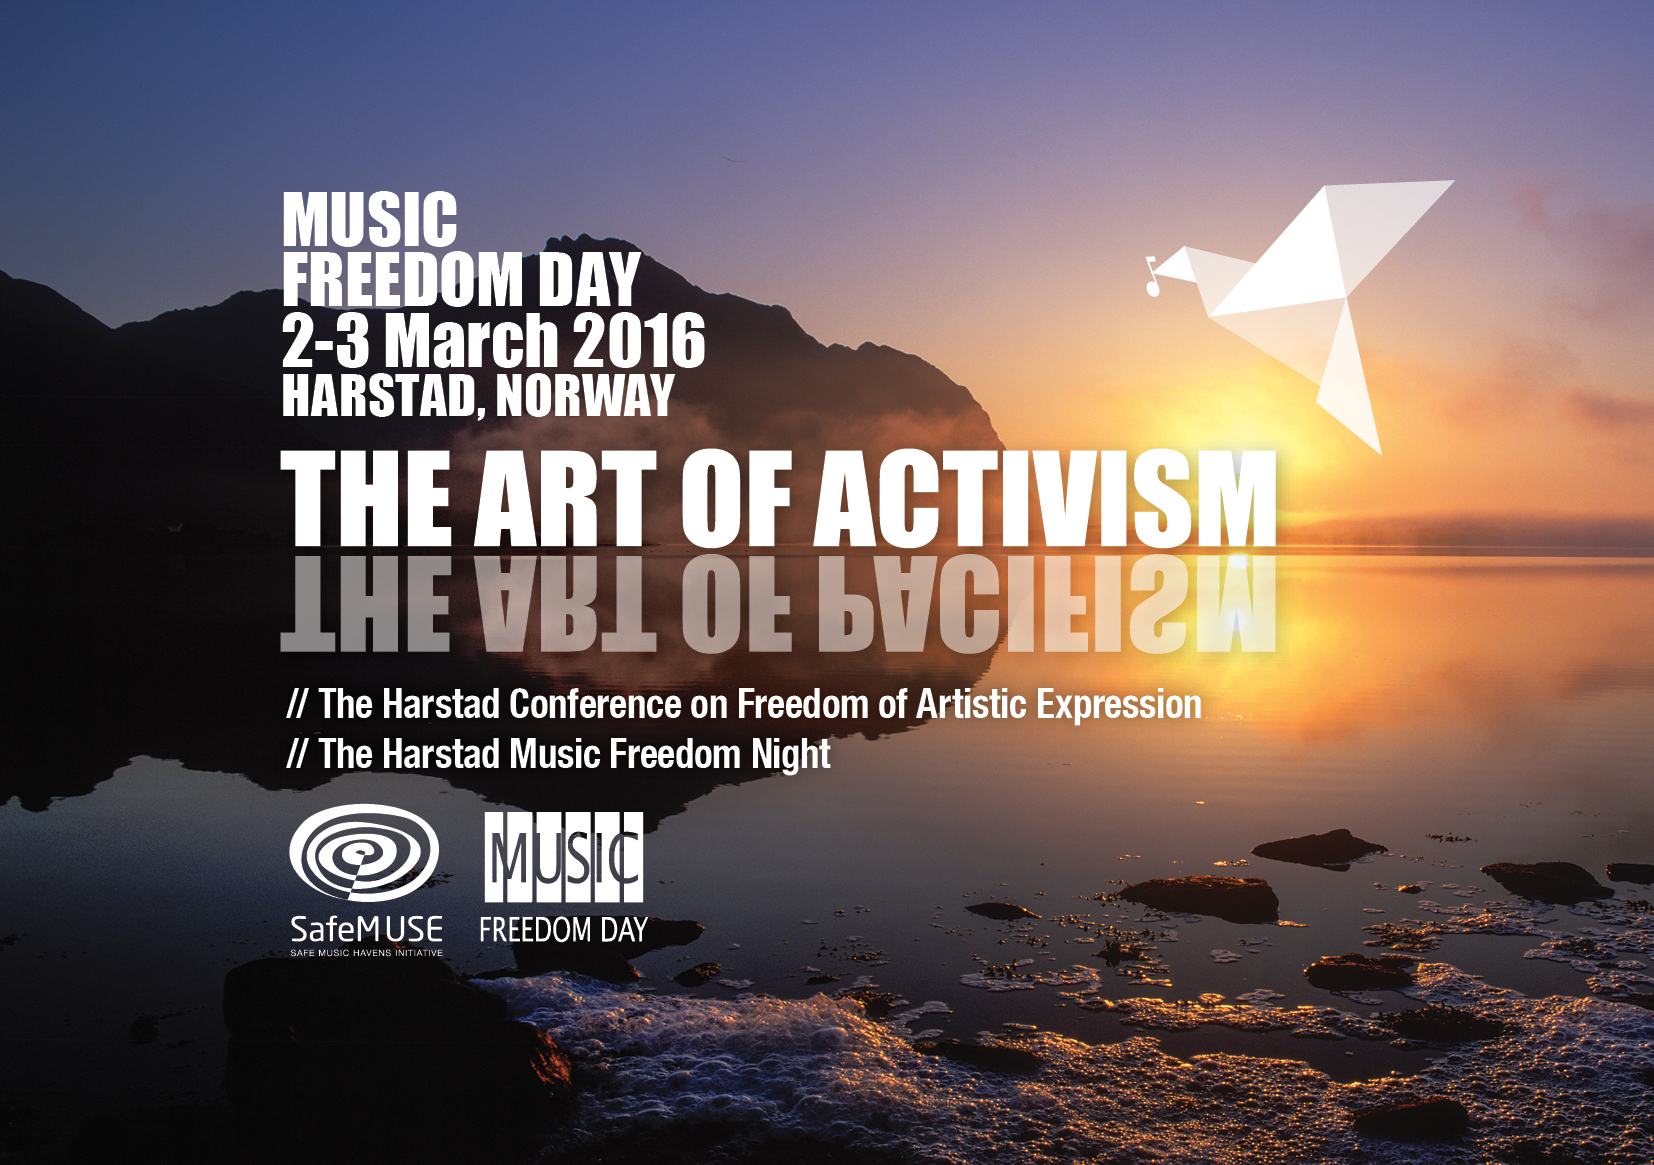 Music Freedom Day 2016